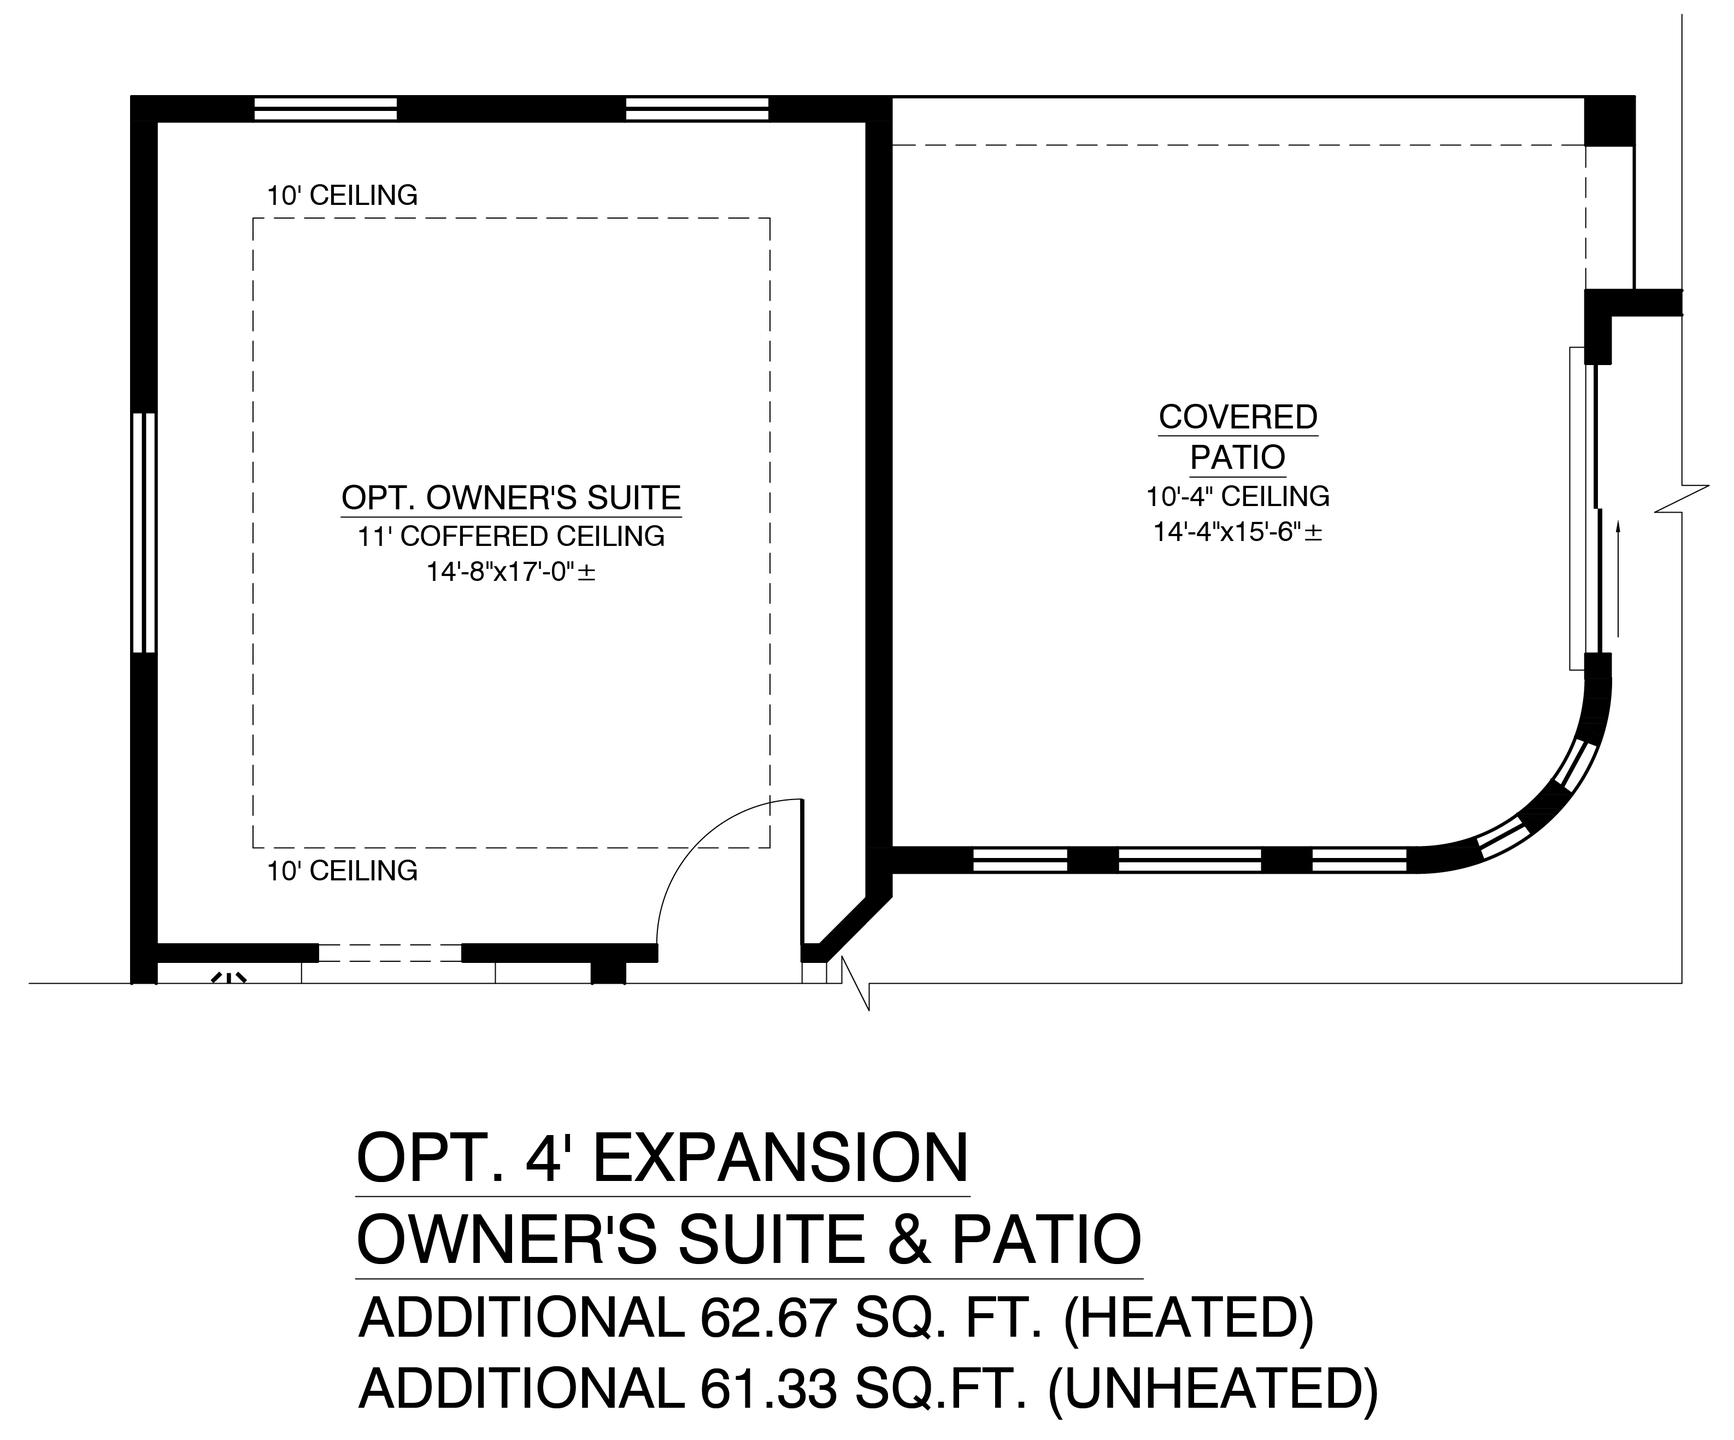 Optional Owners Suite Expansion And Patio